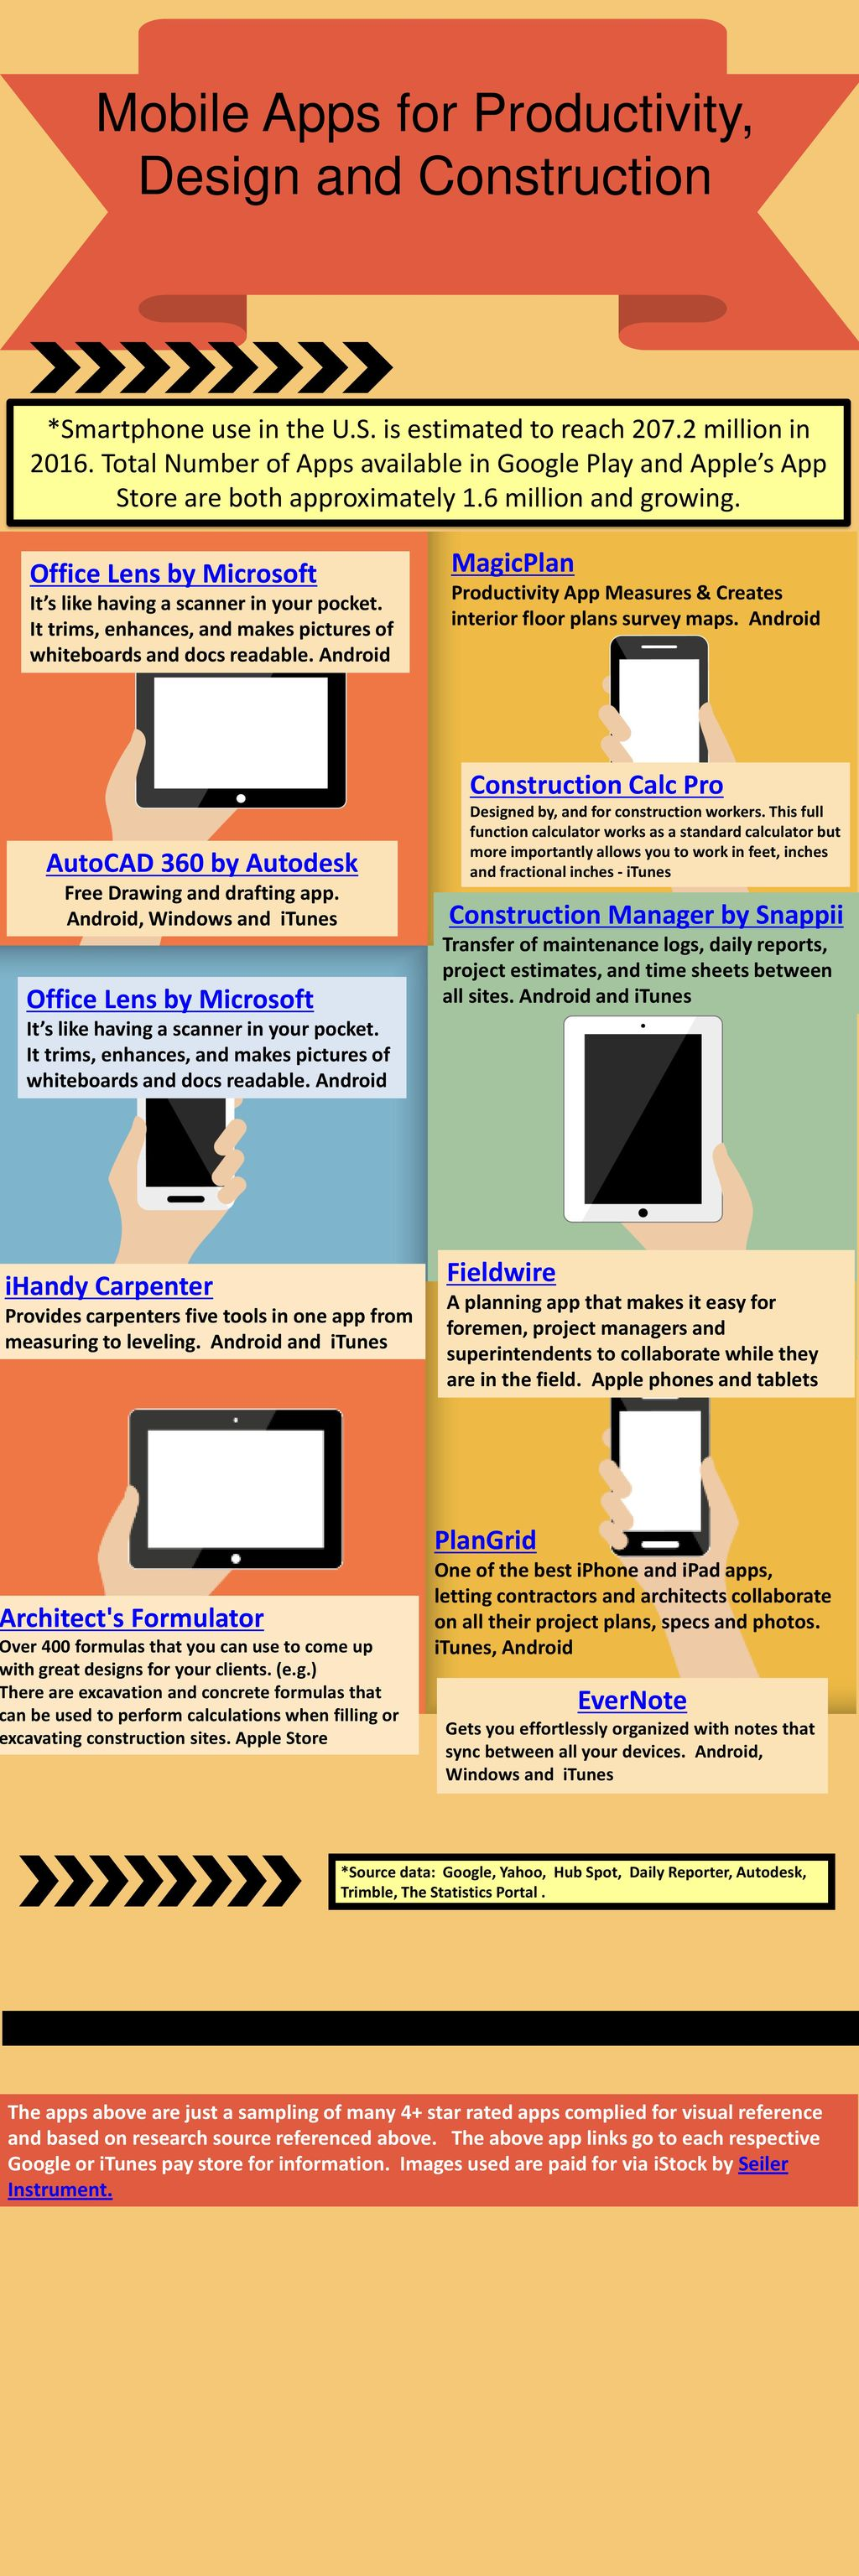 50% Mobile Apps for Productivity, Design and Construction - ppt download